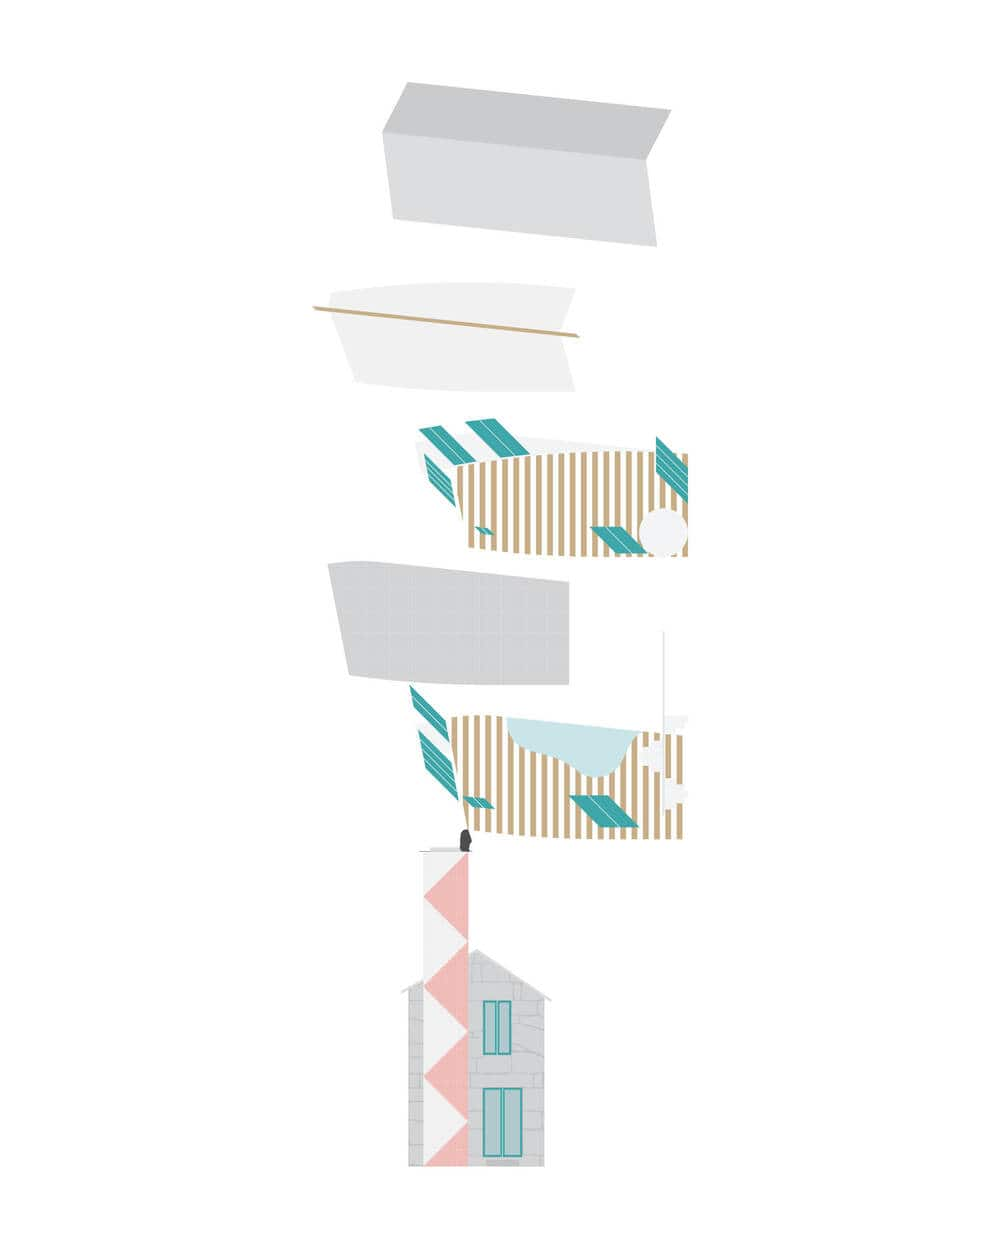 This is an illustration of the house's floor plan and side elevation.